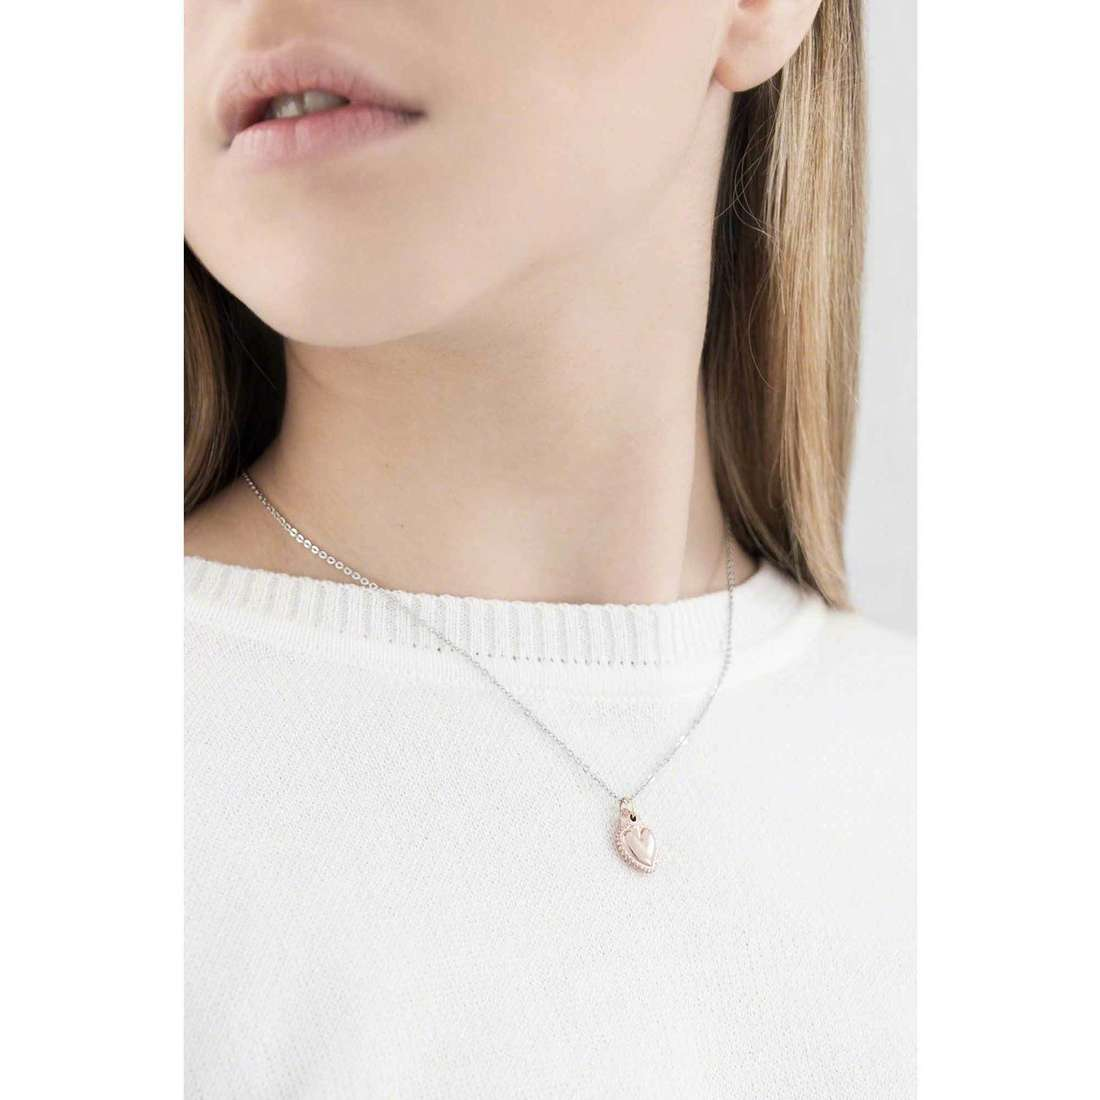 Marlù colliers Sacro Cuore femme 13CN033 indosso